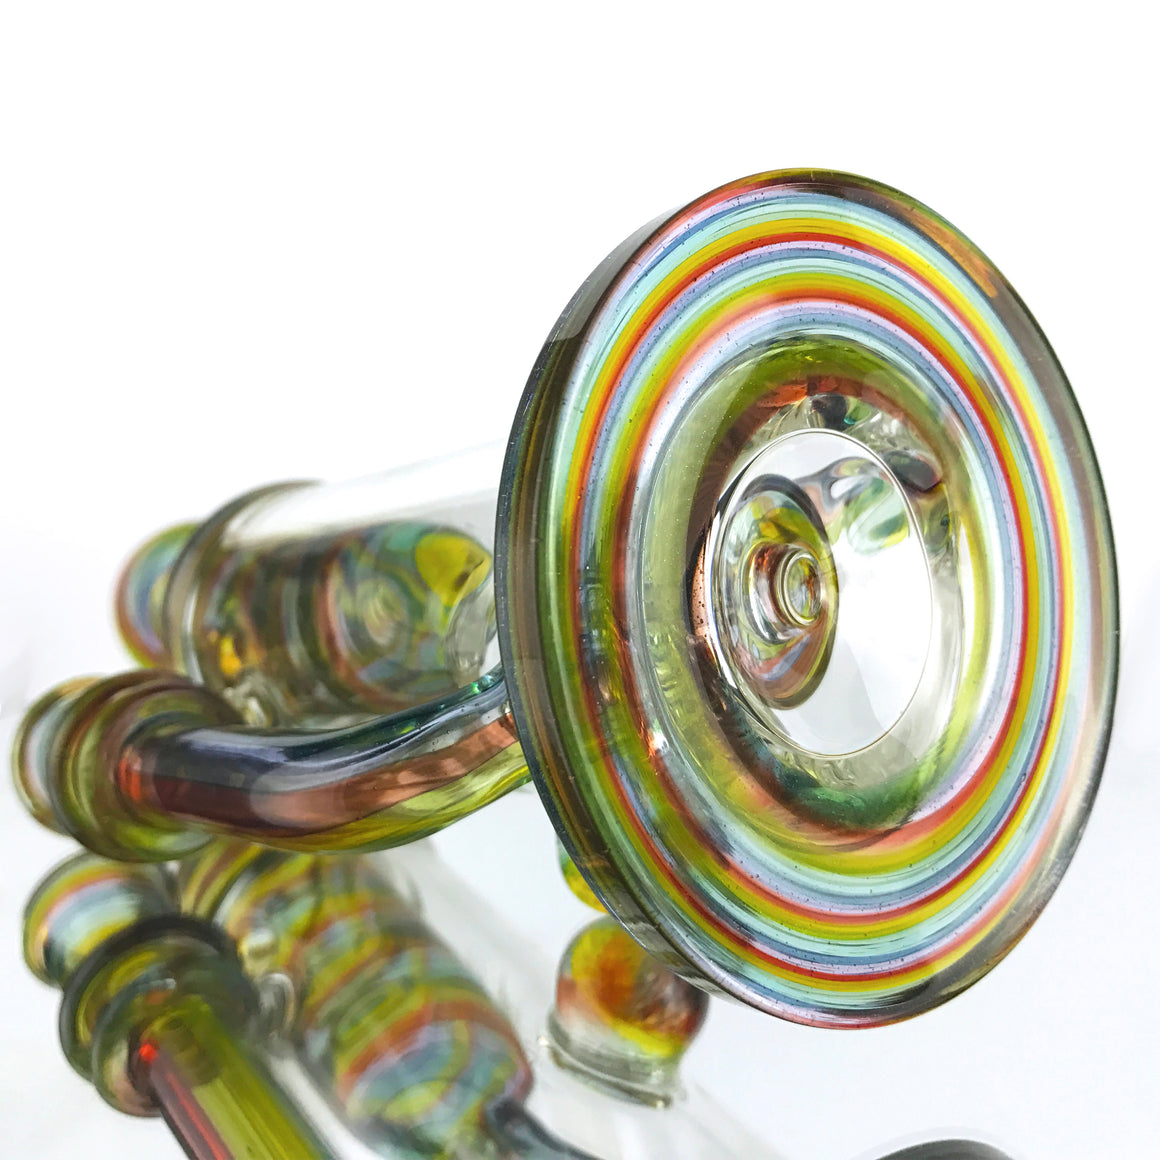 Fully-Worked Internal Klein Recycler - Transparent Rainbow - 14mm Female